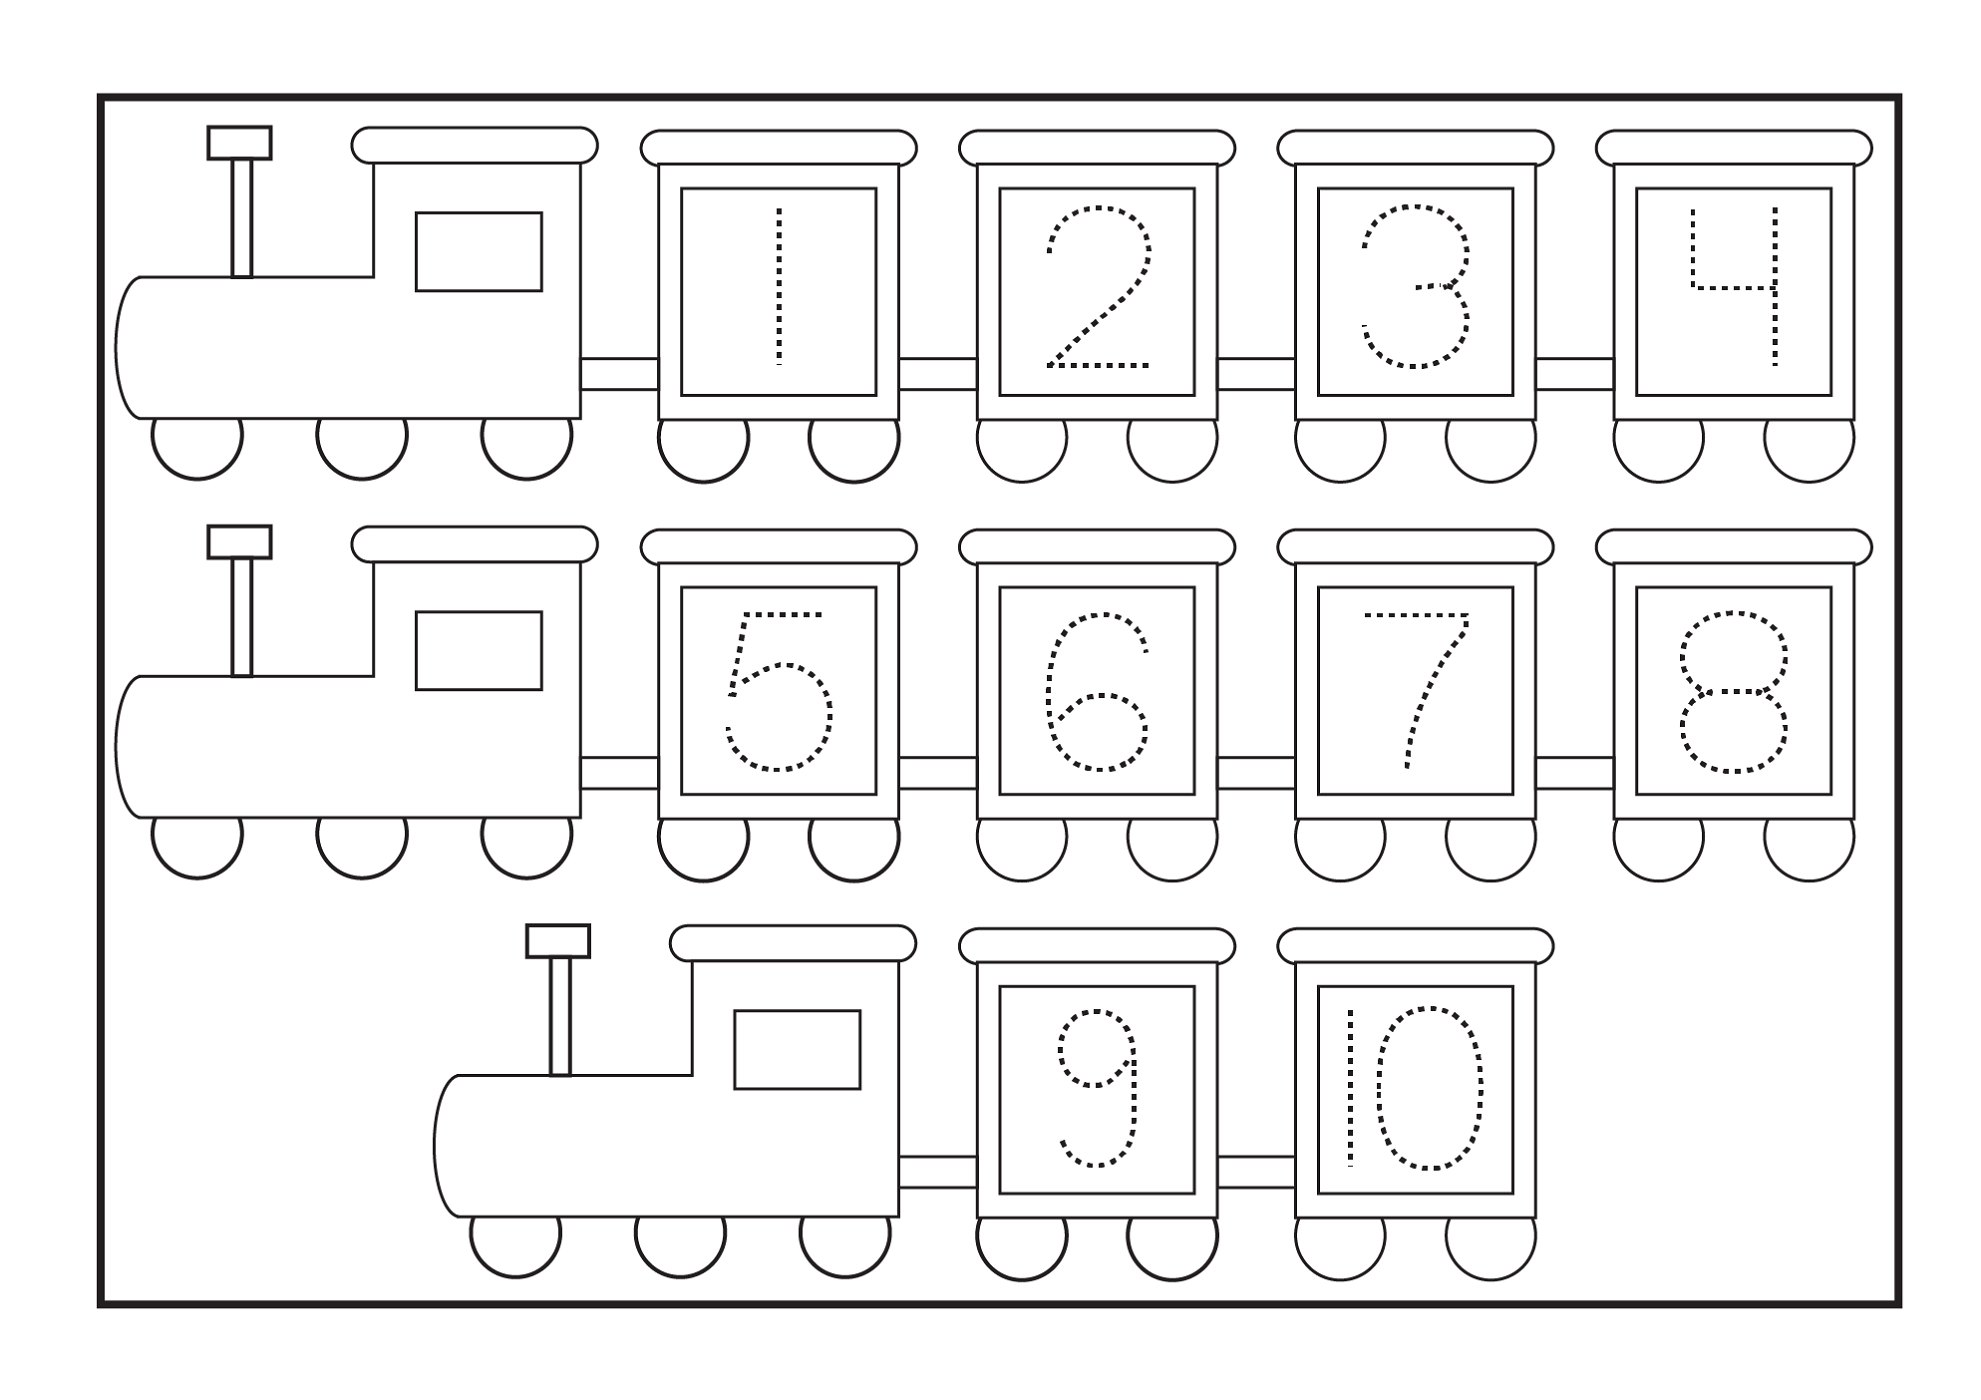 Free Printable Tracing Numbers Worksheets For Preschoolers - Deployday